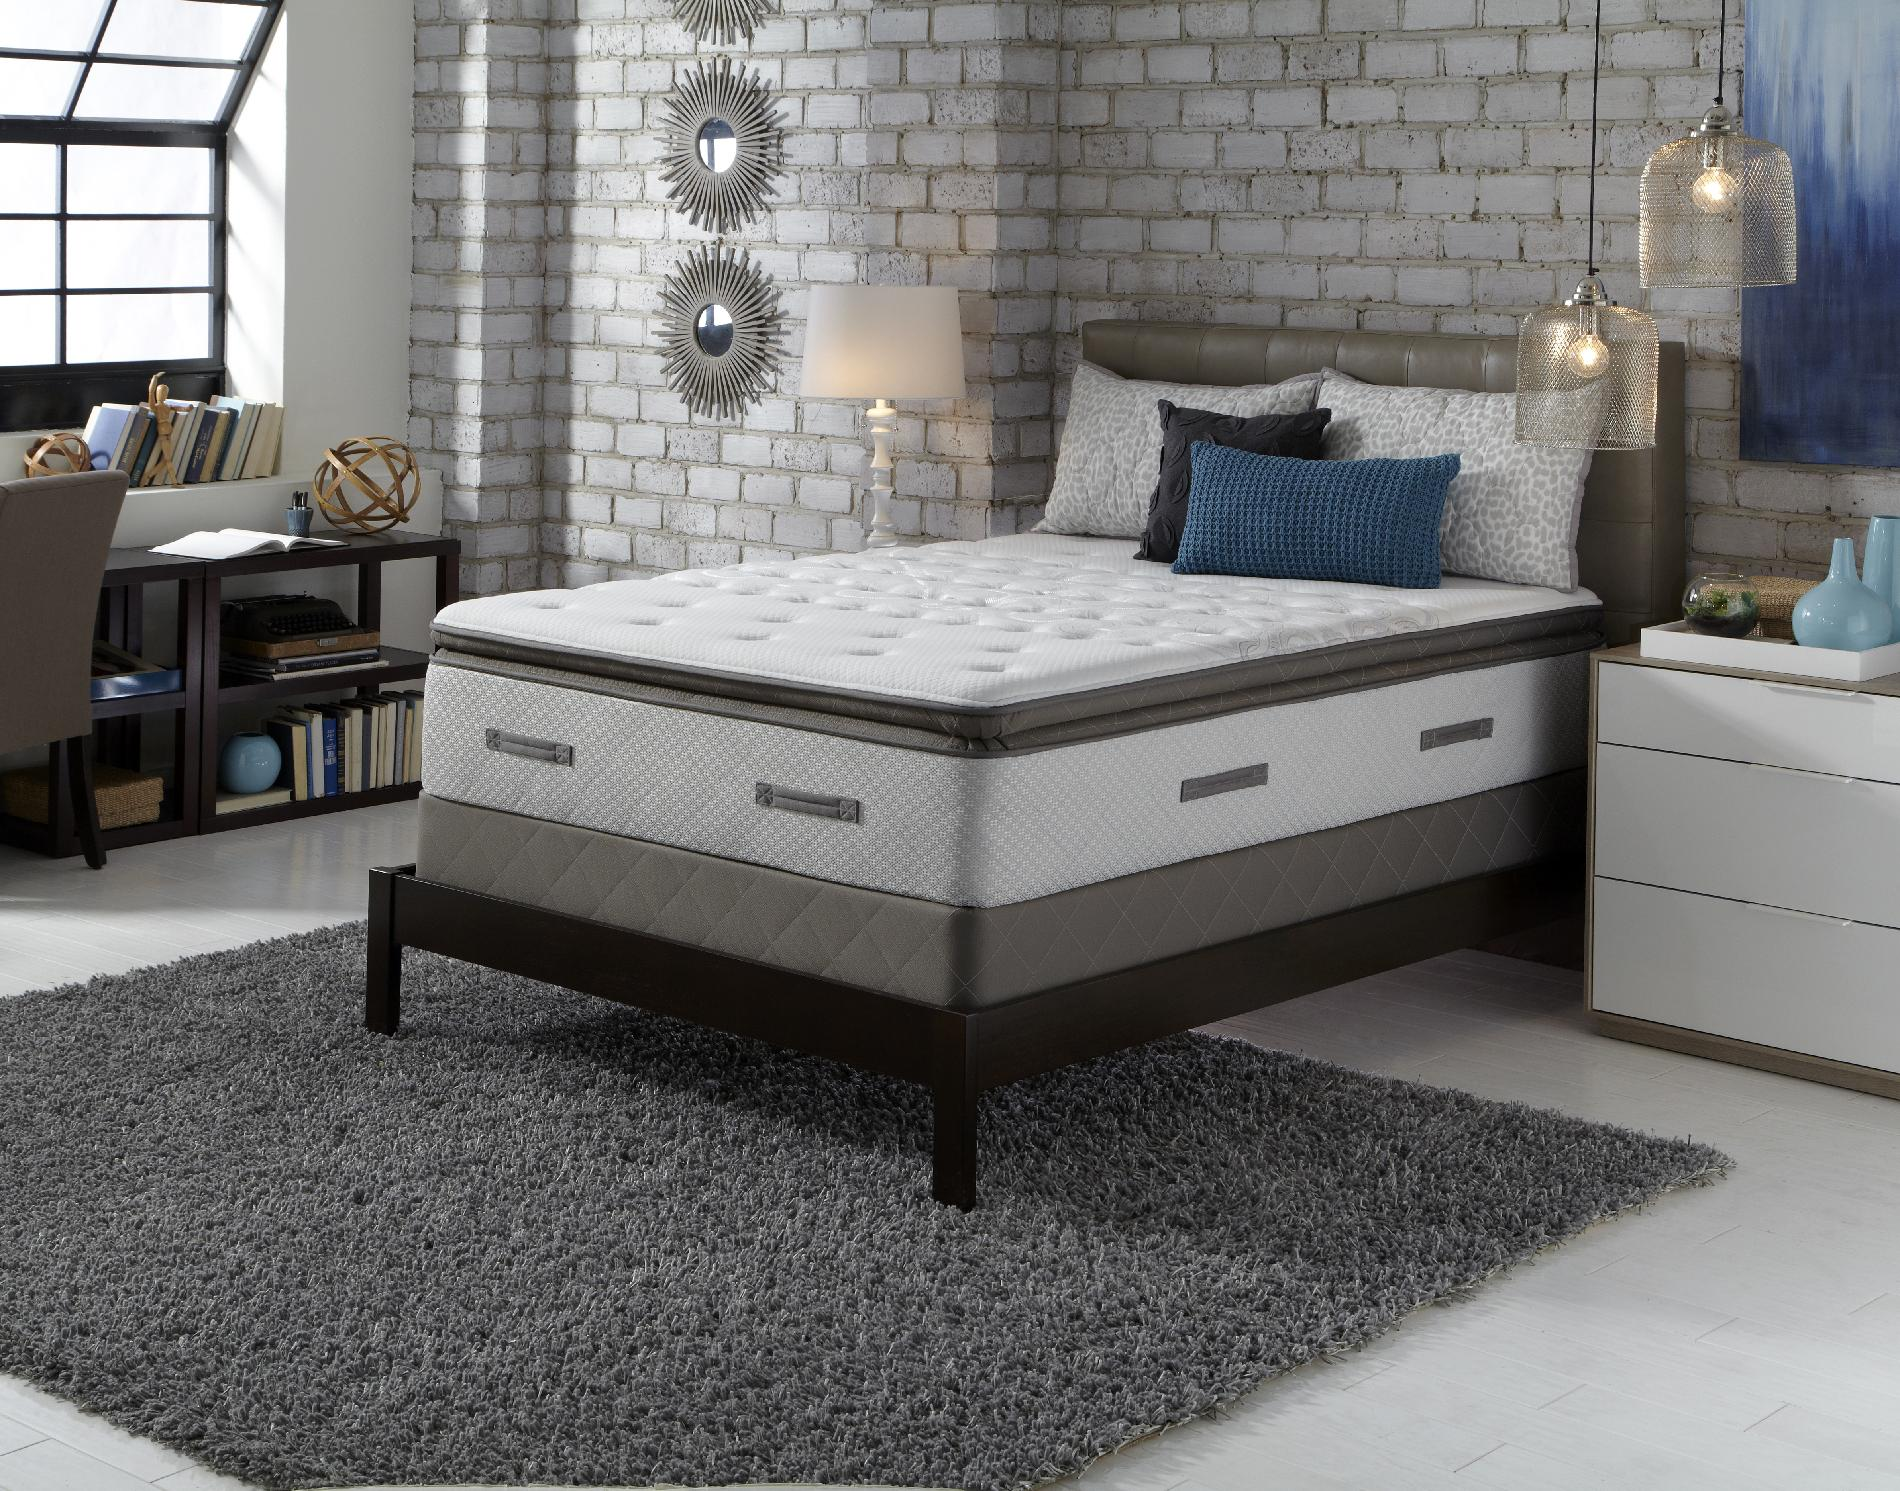 Sealy Posturepedic Posturepedic CLOSEOUT - Cool Dawn Full Mattress Only